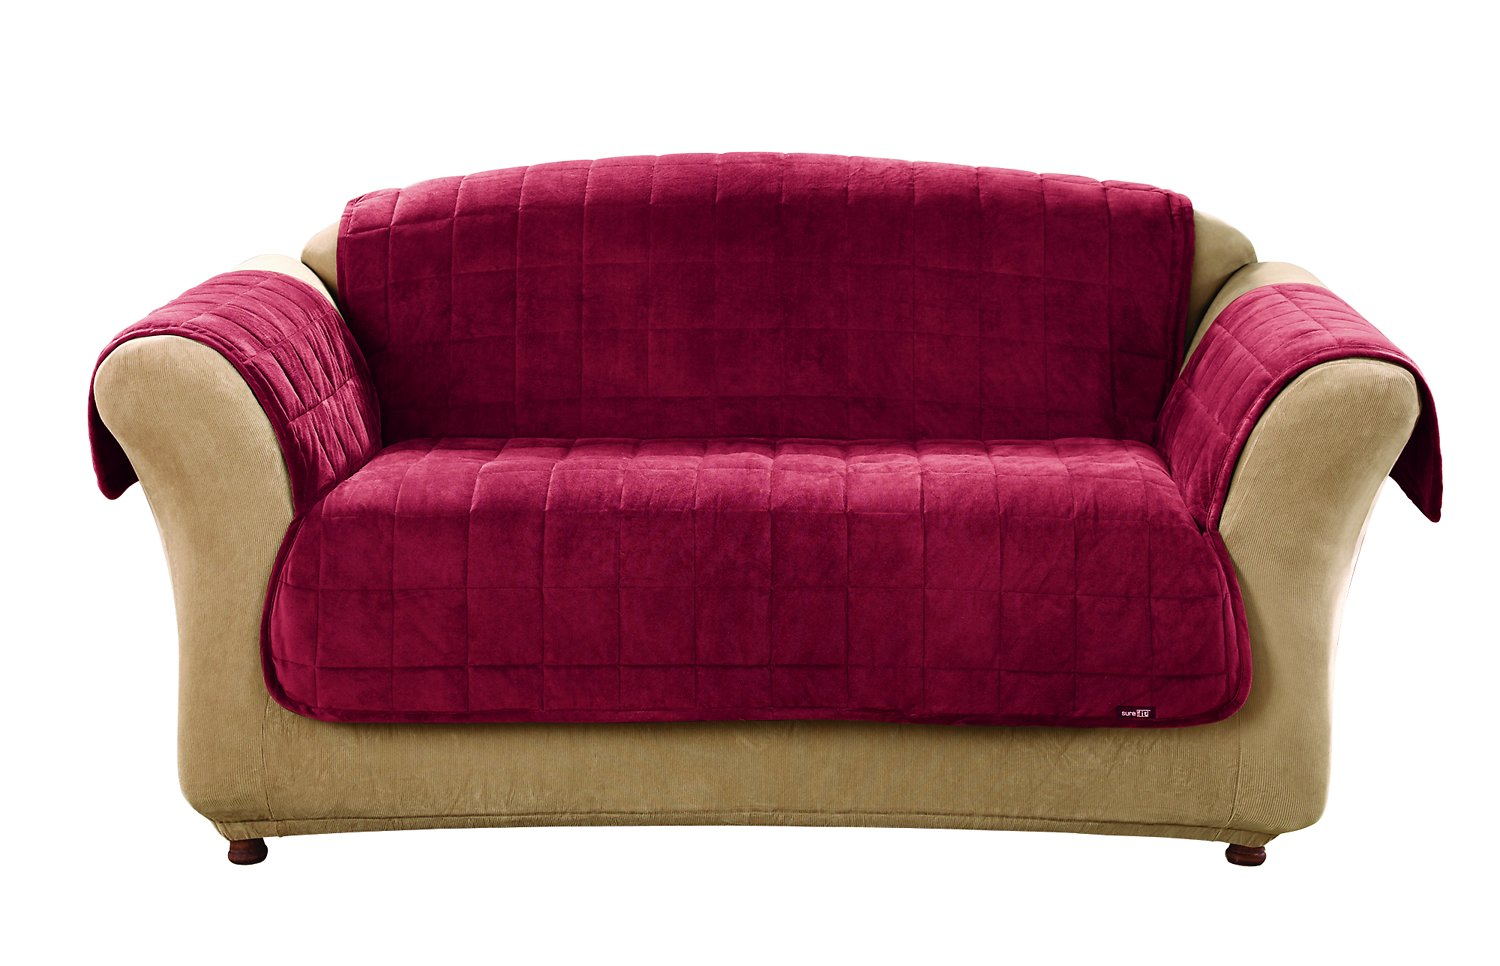 Prime Sure Fit Deluxe Loveseat Cover Burgundy Dailytribune Chair Design For Home Dailytribuneorg